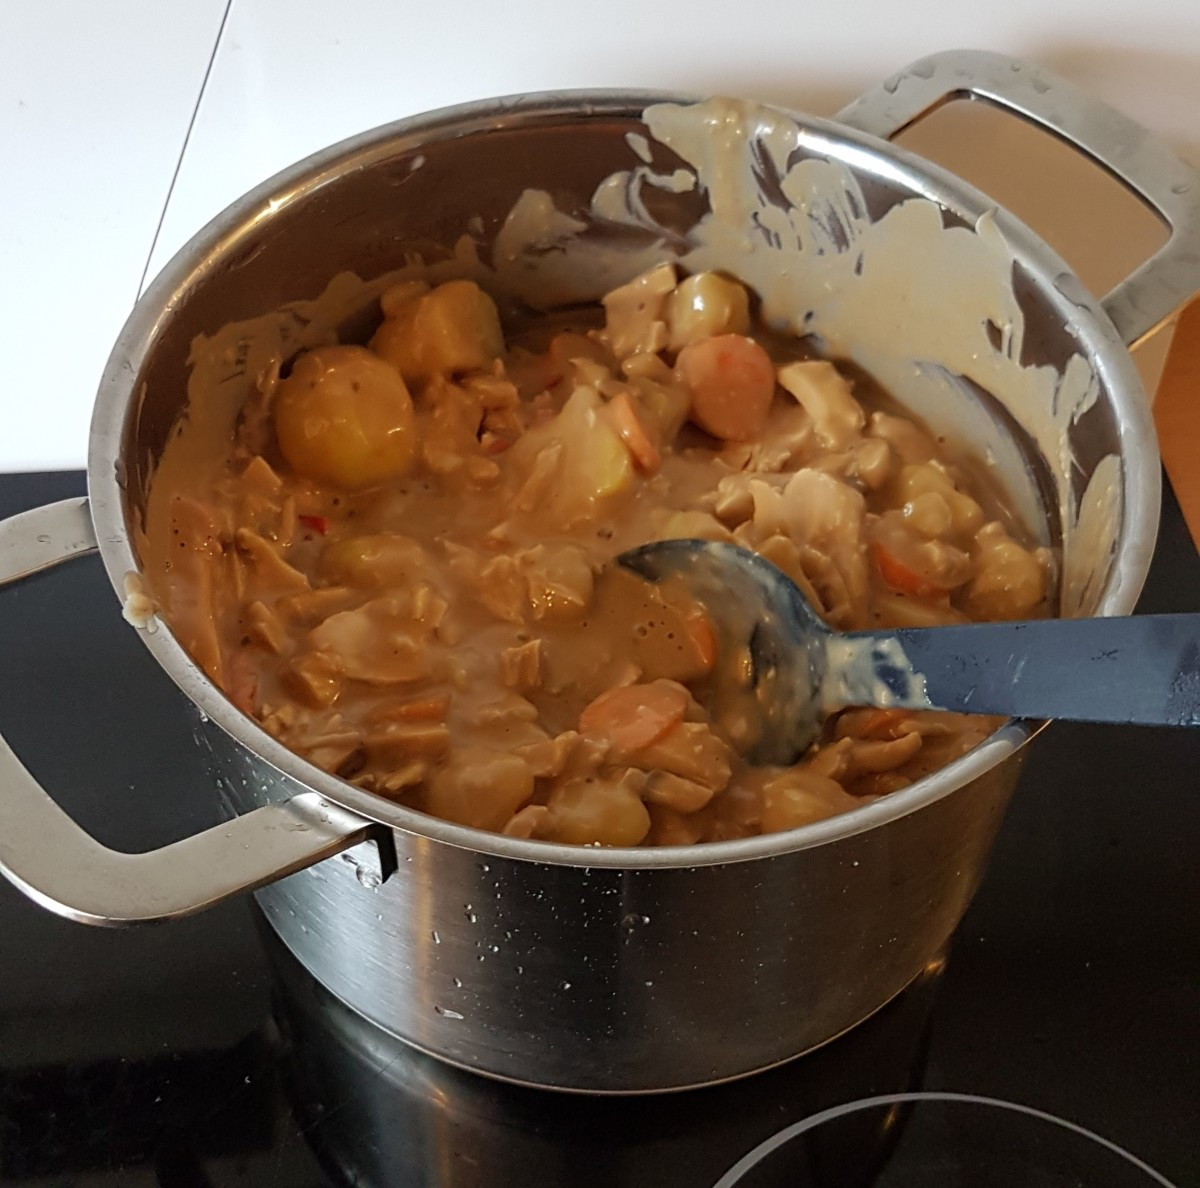 Chicken stew in a pot. Now the only thing left is to mix it and let it heat up.